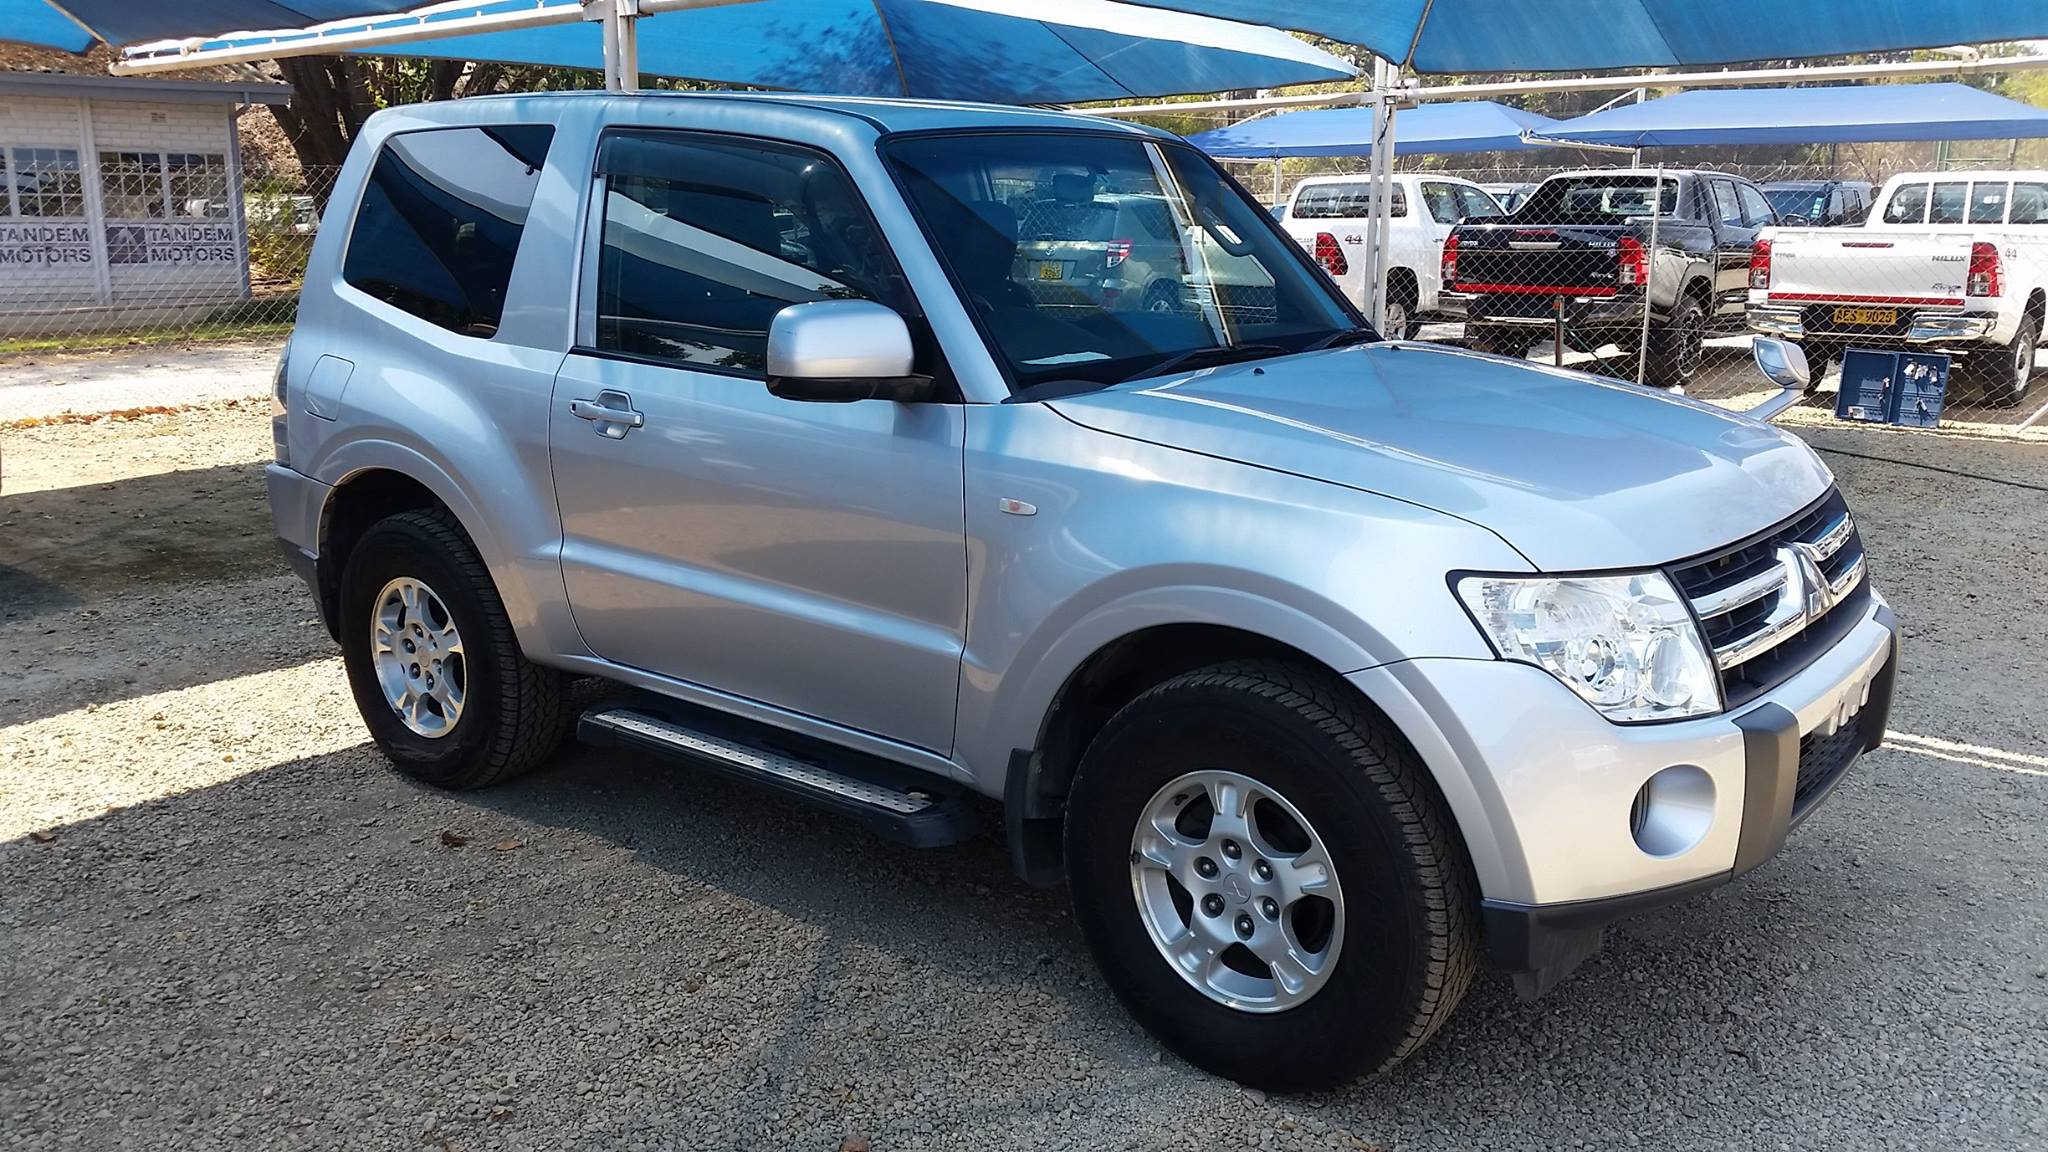 Cars for Sale Classifieds Zimbabwe Best Of Tandem Motors norfolk Road Harare 2018